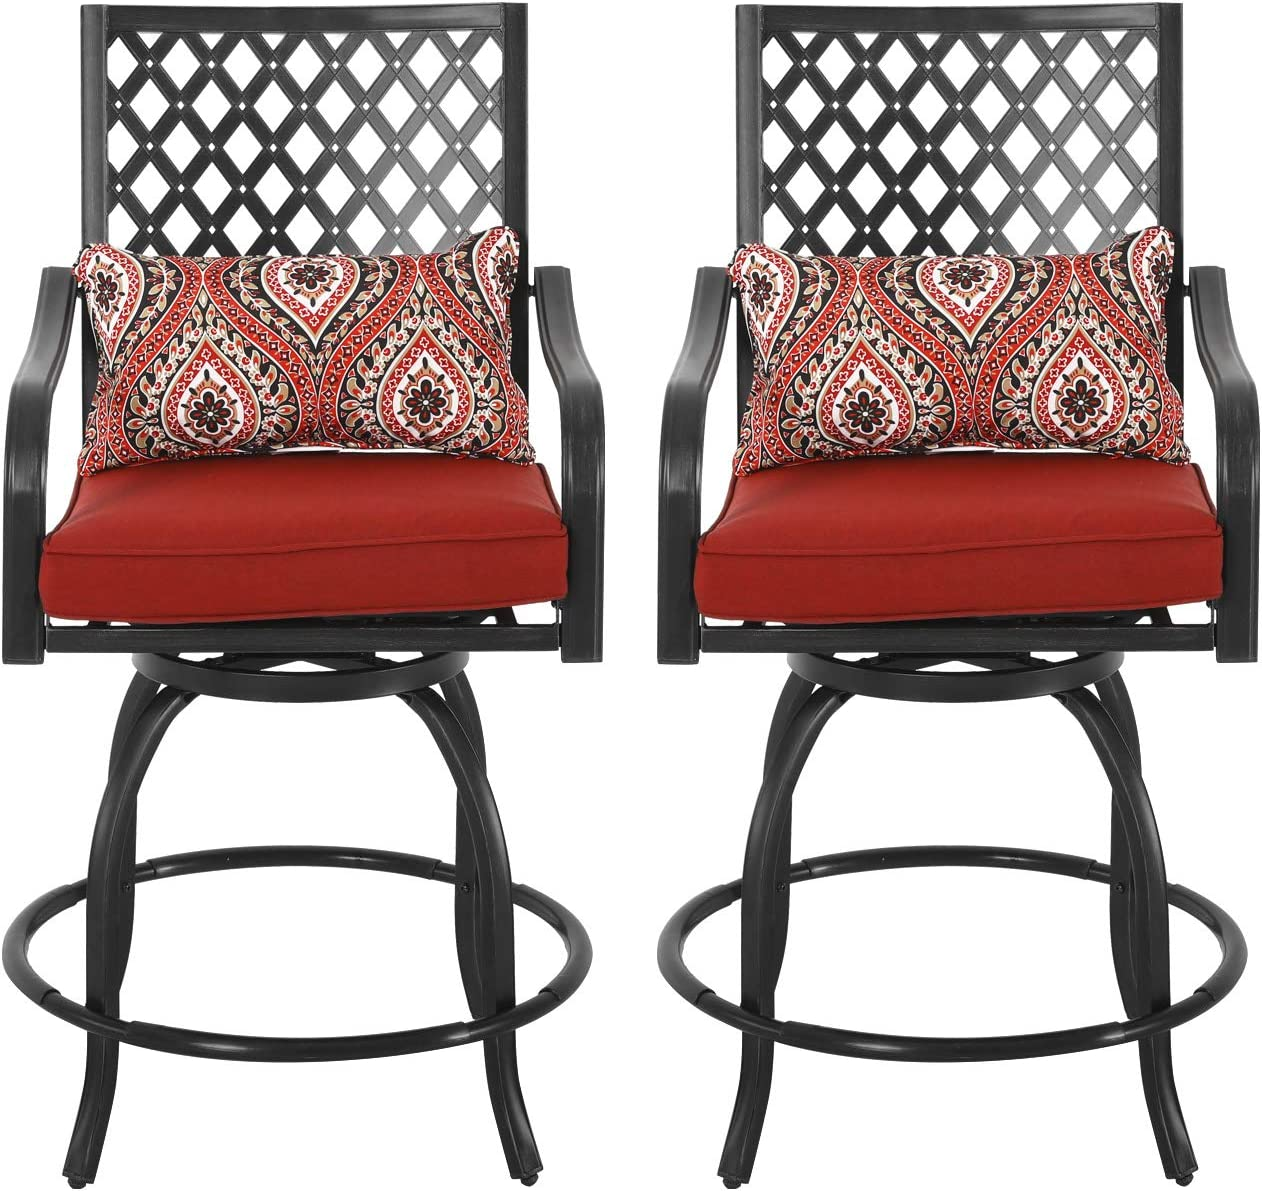 Nuu Garden 2 Piece Outdoor Swivel Patio Chairs, Wrought Iron Patio Furniture Set, Bistro Chairs Set of 2 with Cushions and Pillows – Black, Red